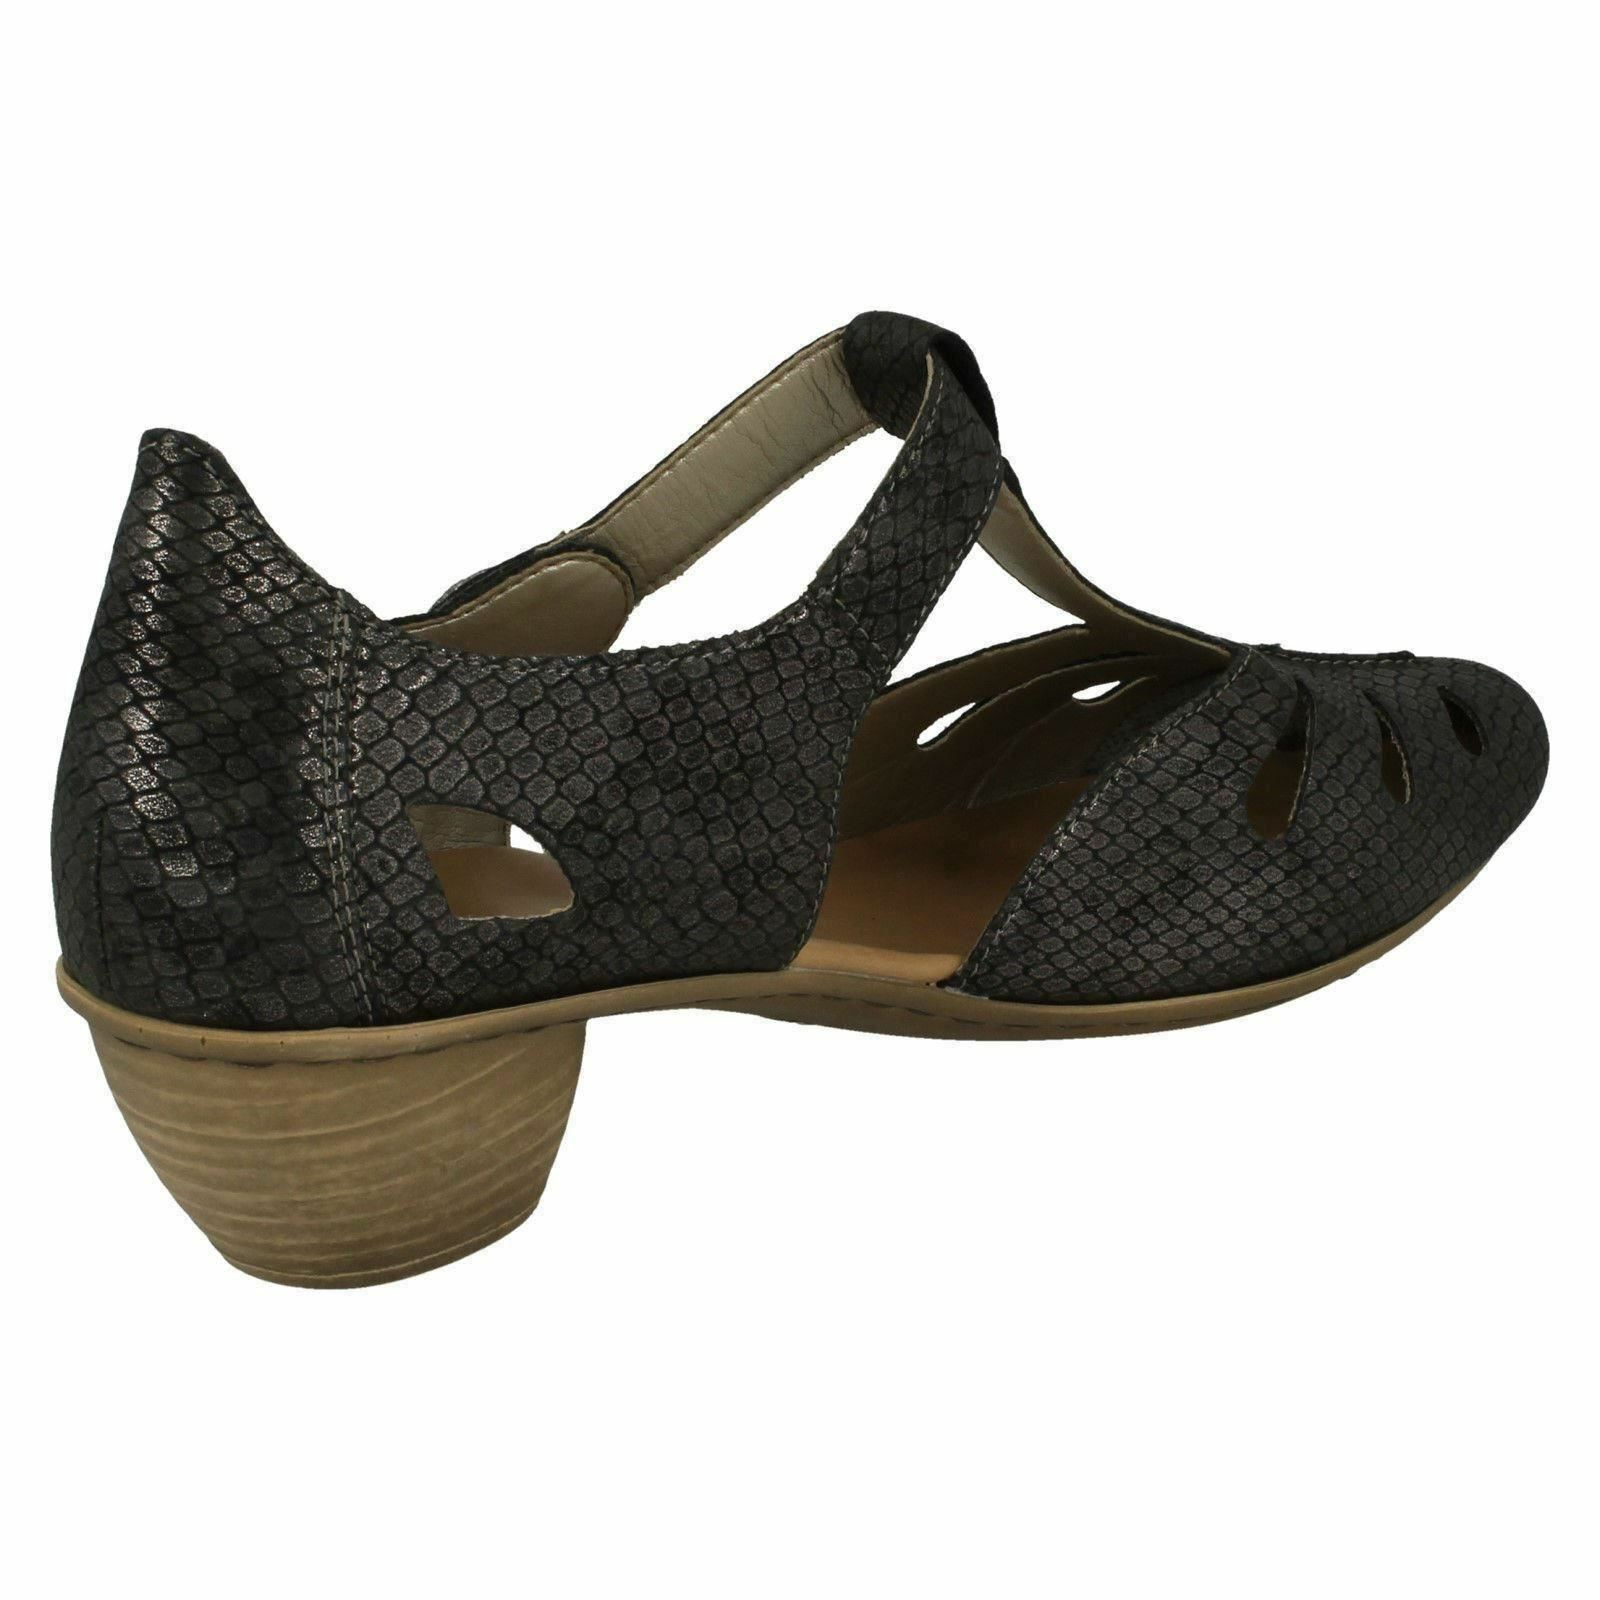 43750 LADIES RIEKER CLOSED TOE SMART FORMAL HEELED SHOES T BAR SUMMER COURT SHOES HEELED c1f456